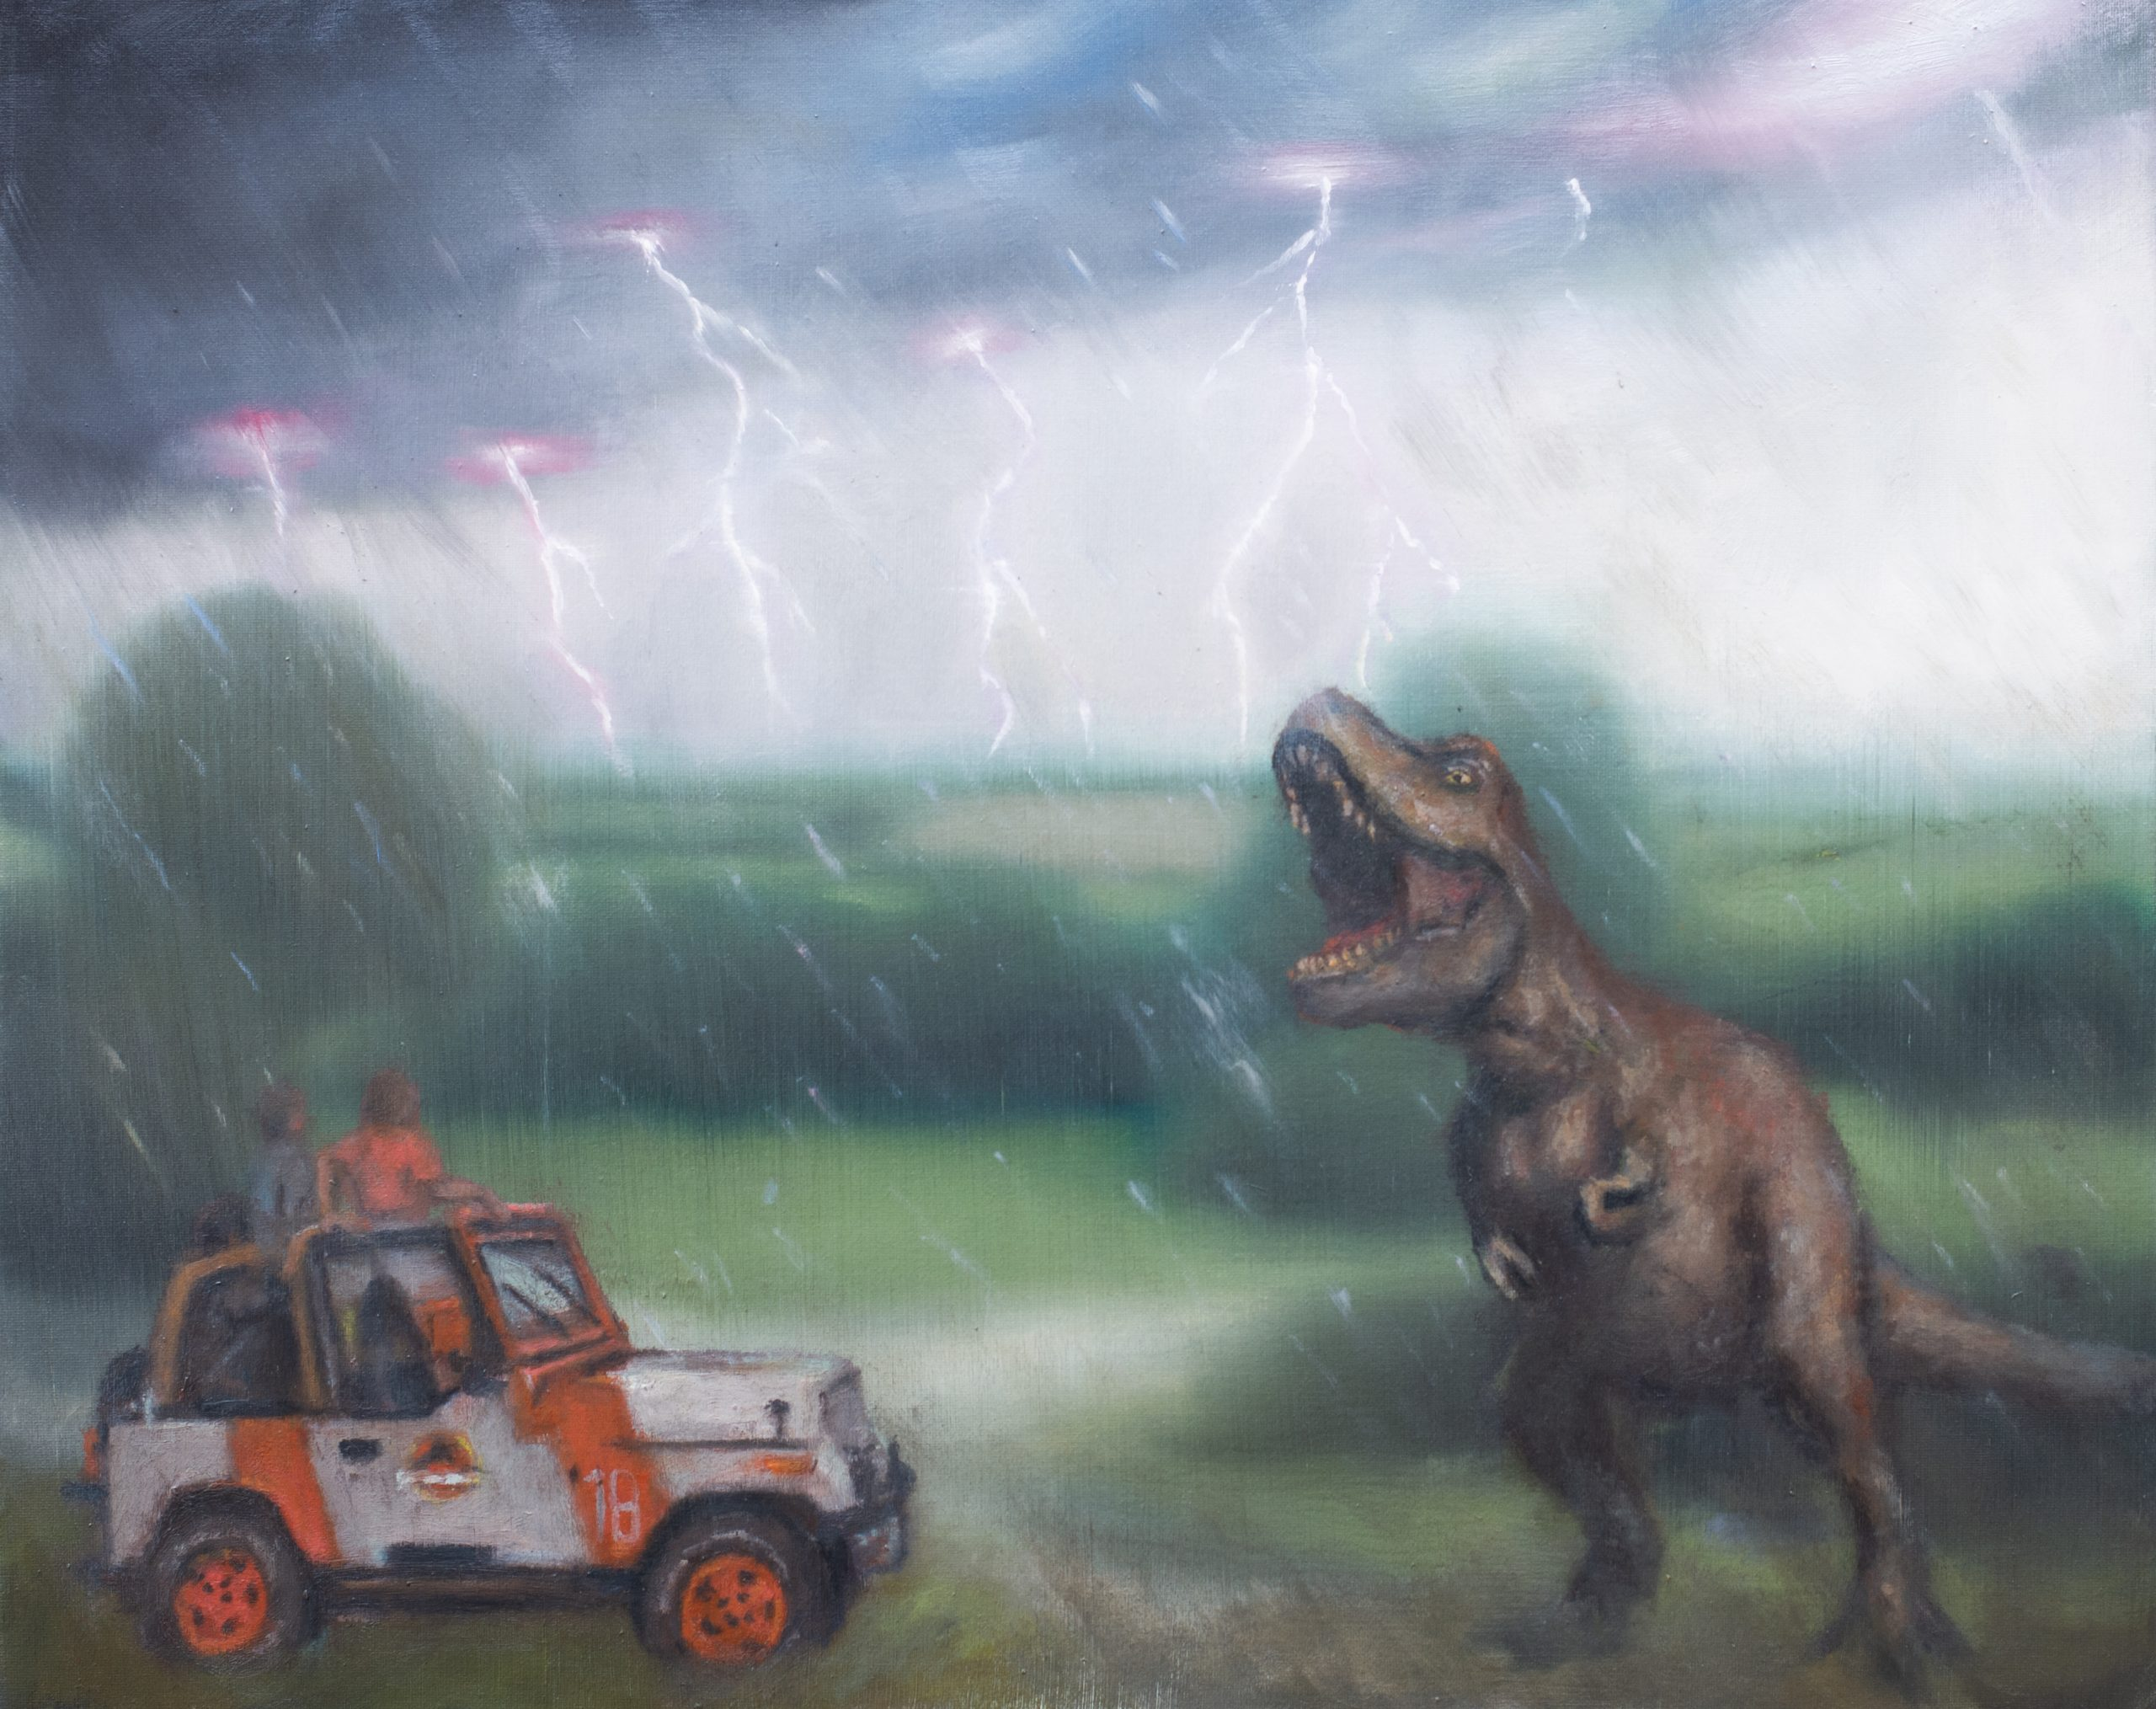 Jurassic Park UK by Tim Gatenby